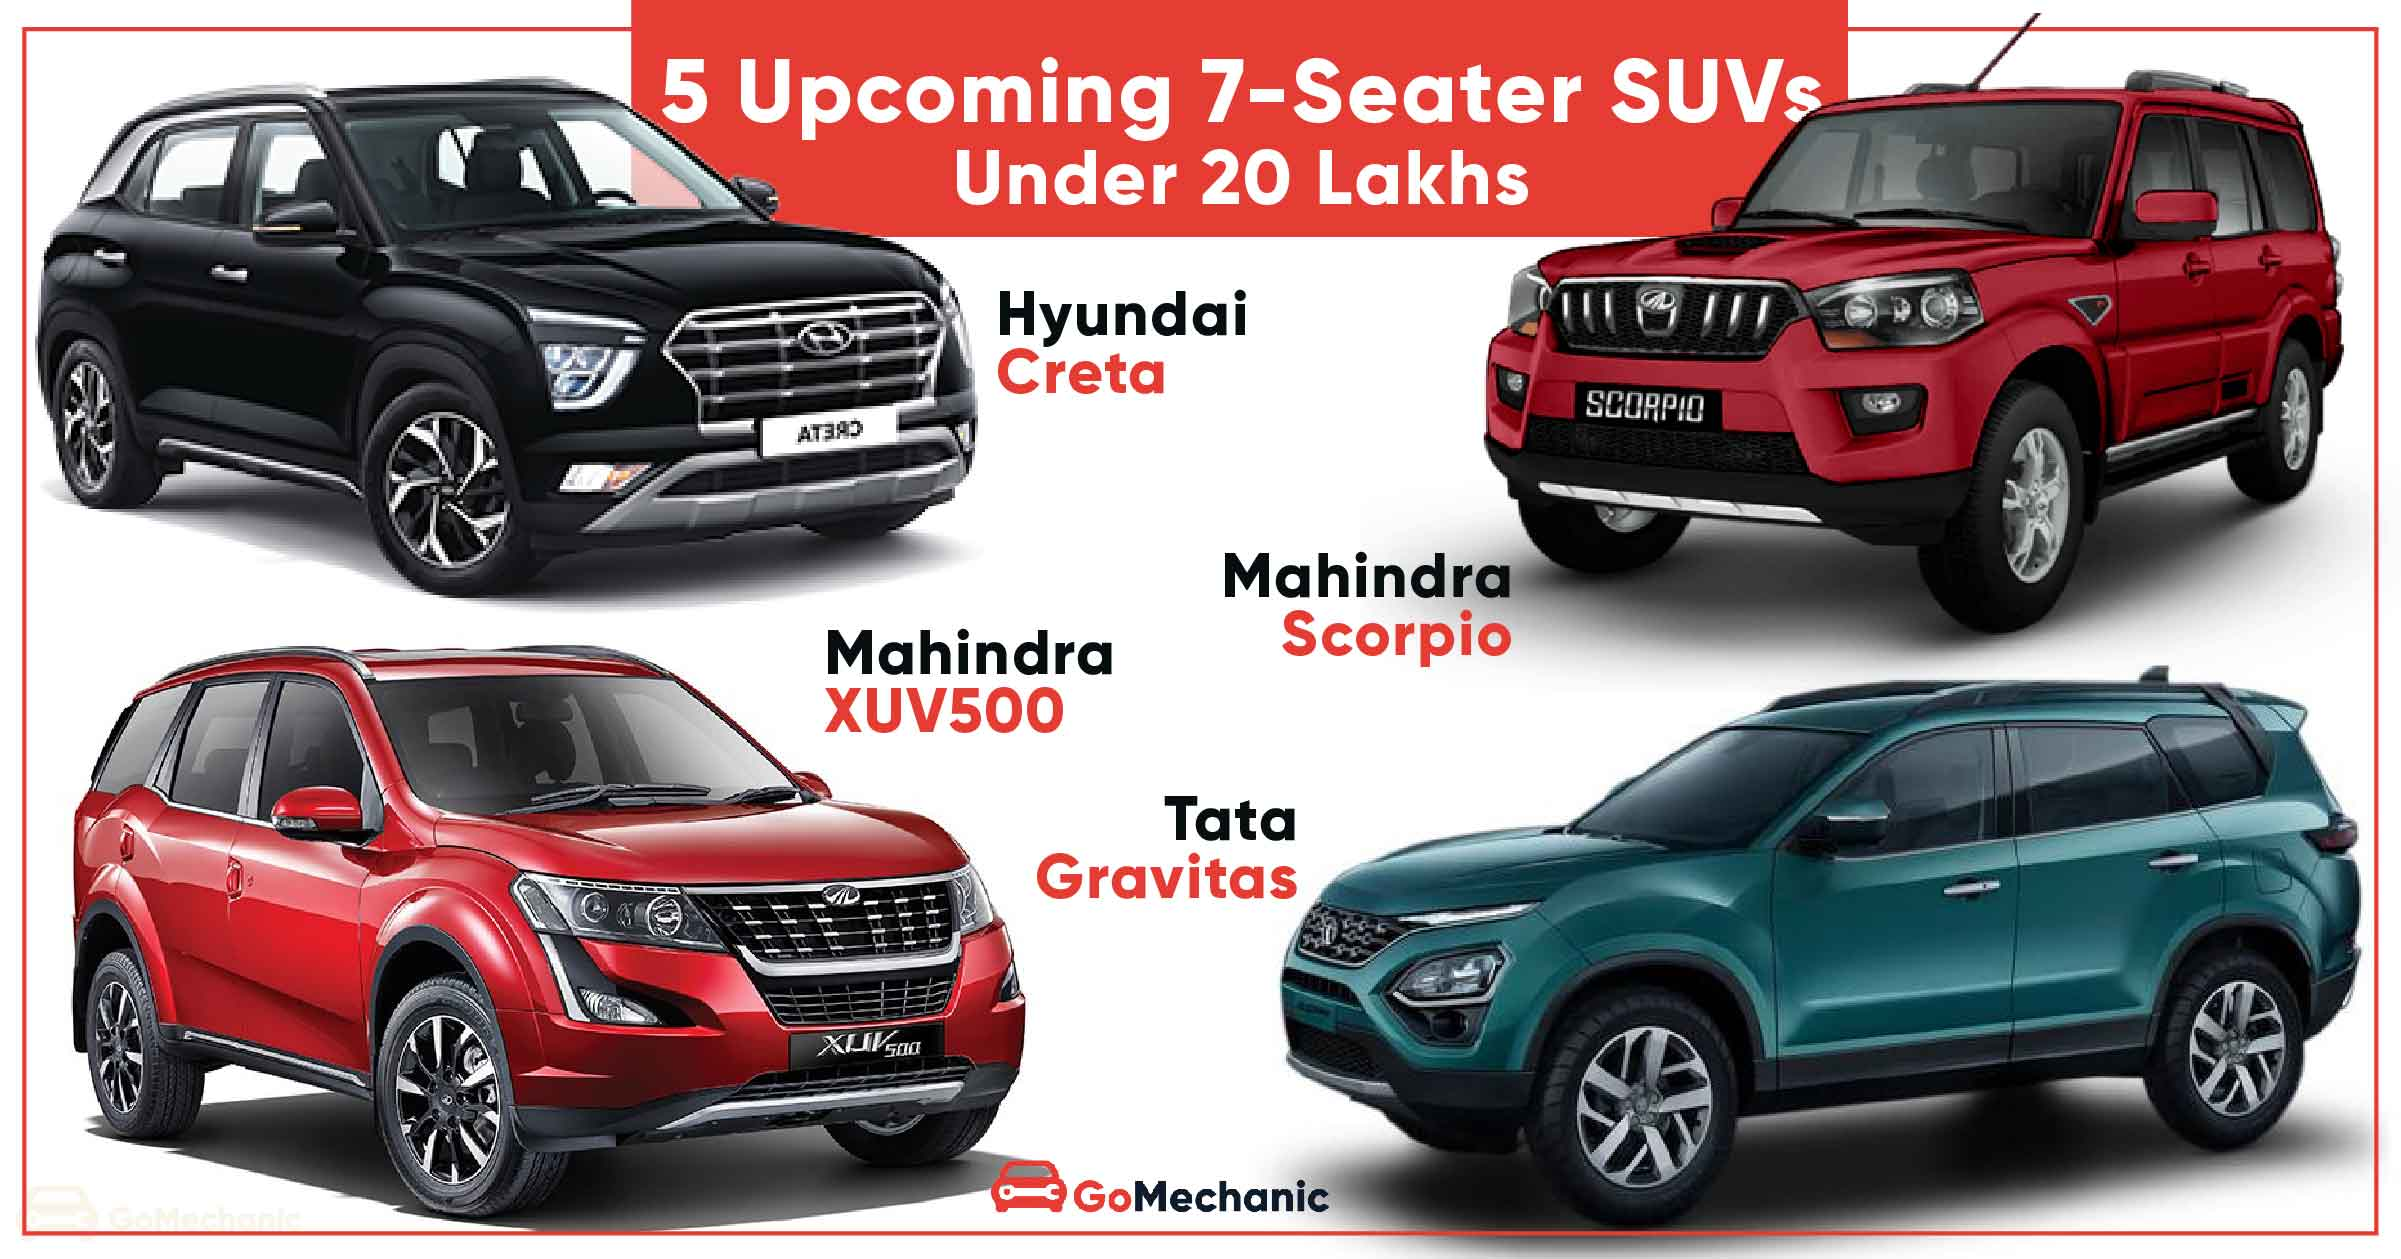 5 Upcoming 7 Seater Suvs Under Rs 20 Lakhs Mg Hector Plus To Xuv500